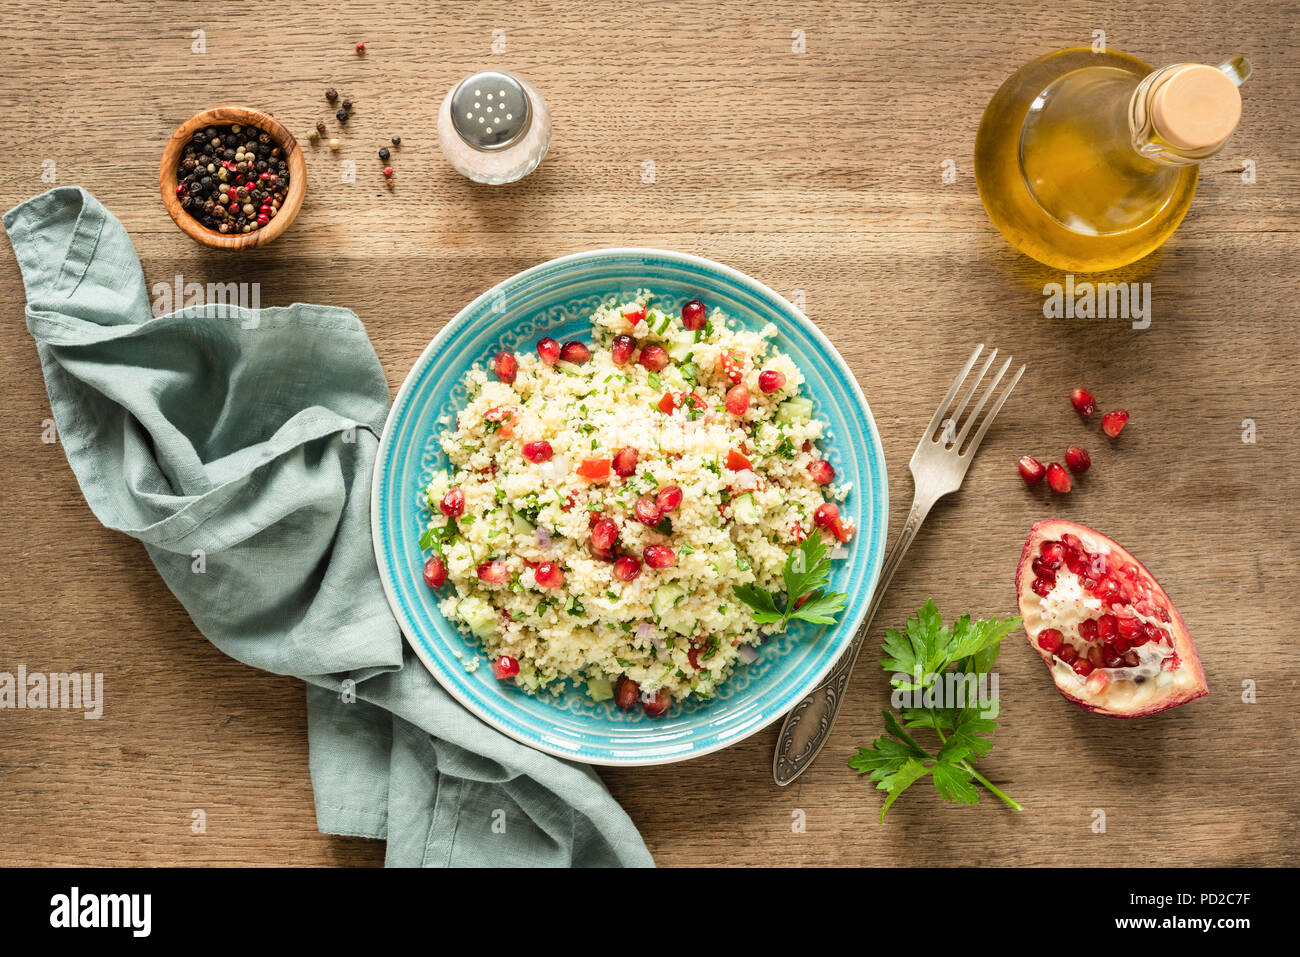 Vegetarian arabic couscous salad Tabbouleh with pomegranate seeds, parsley and olive oil. Top view Stock Photo